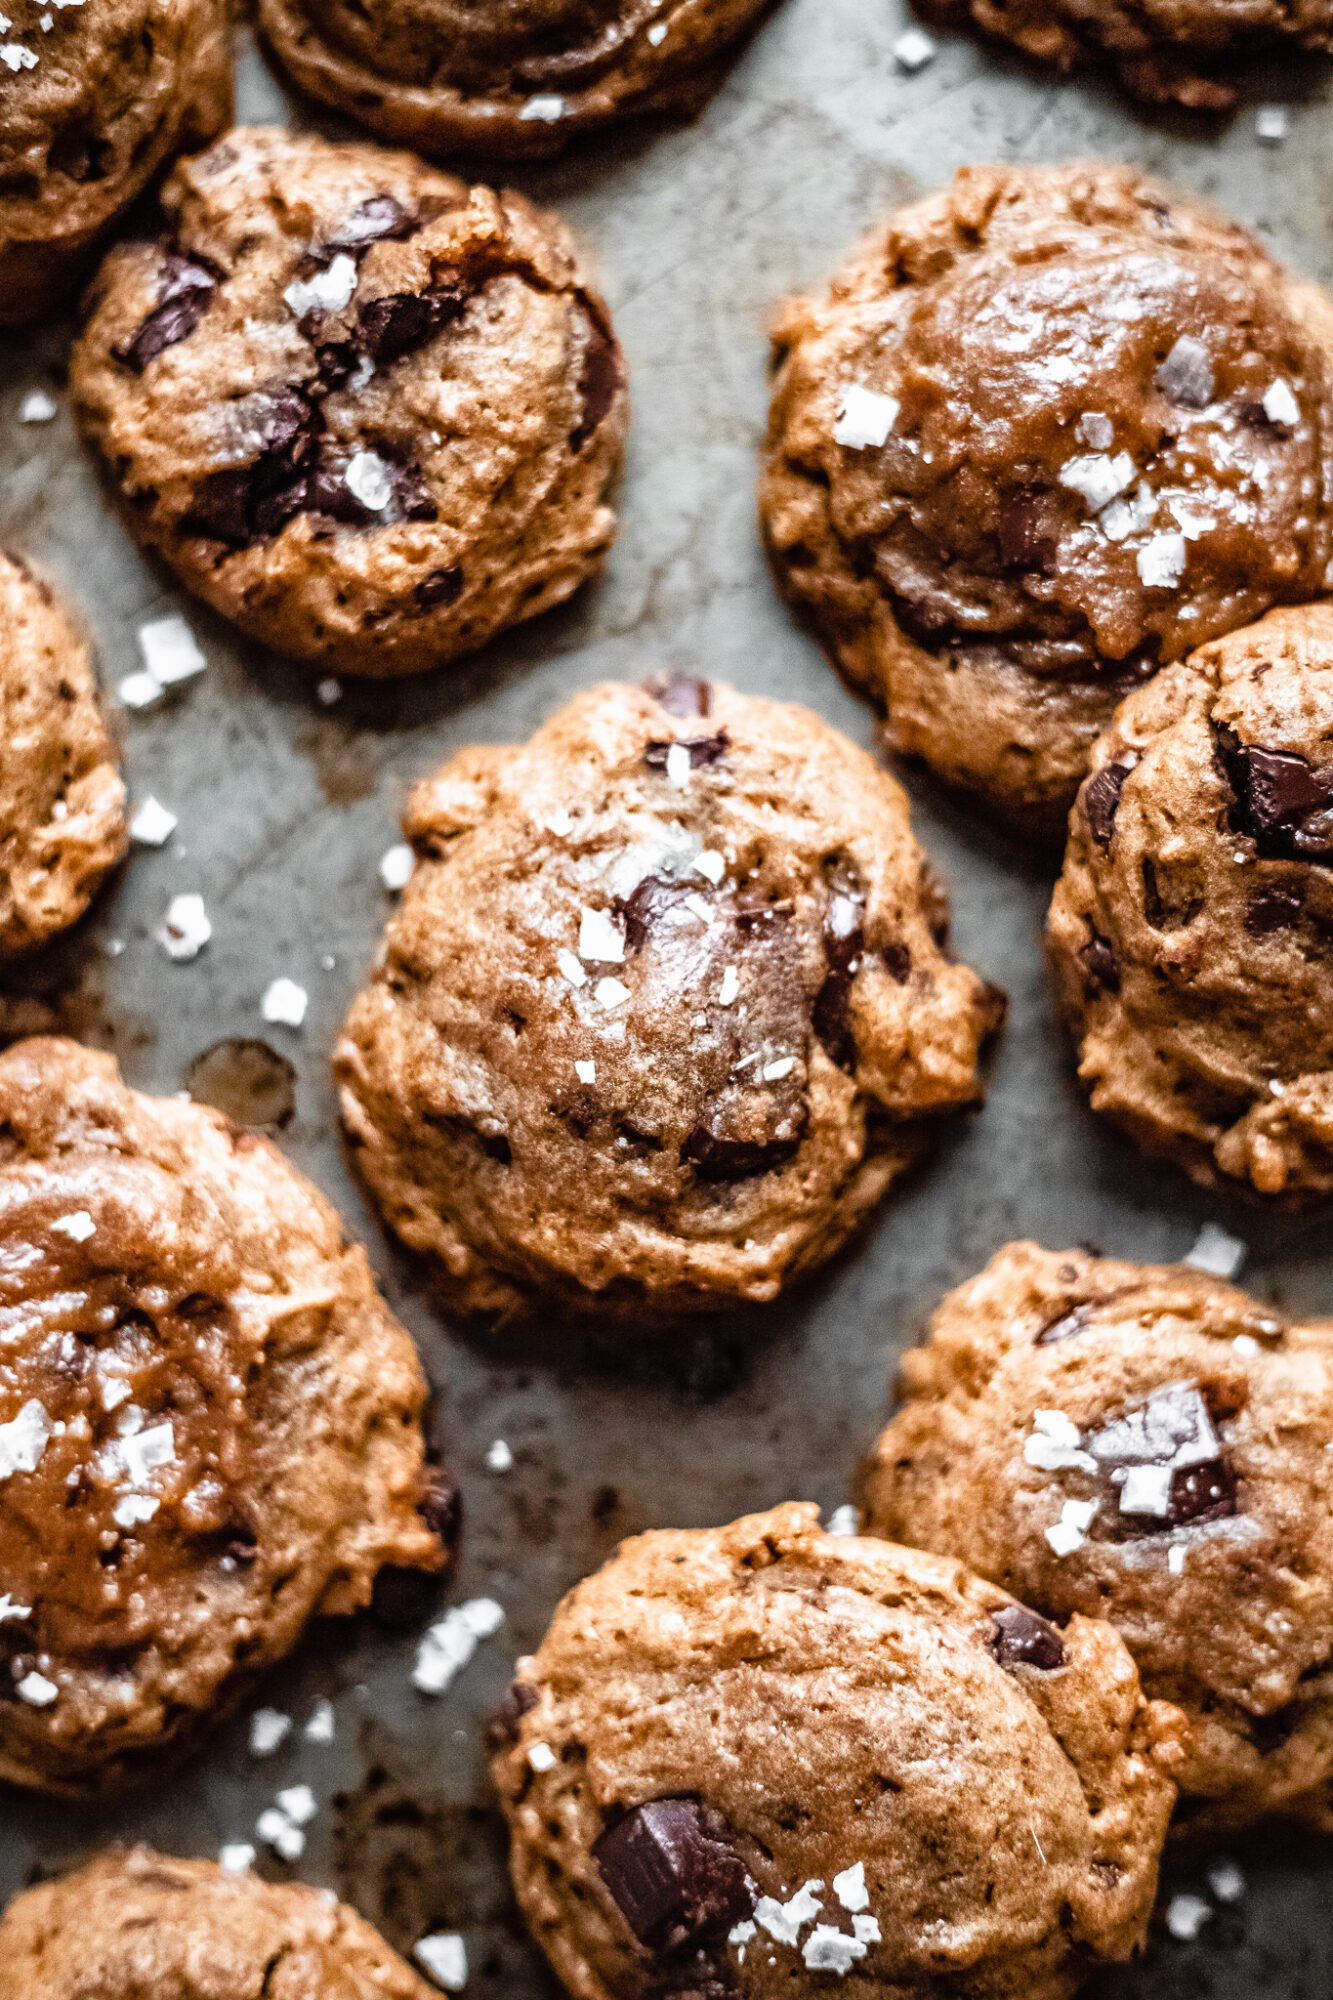 overhead of chocolate chip cookies made from applesauce